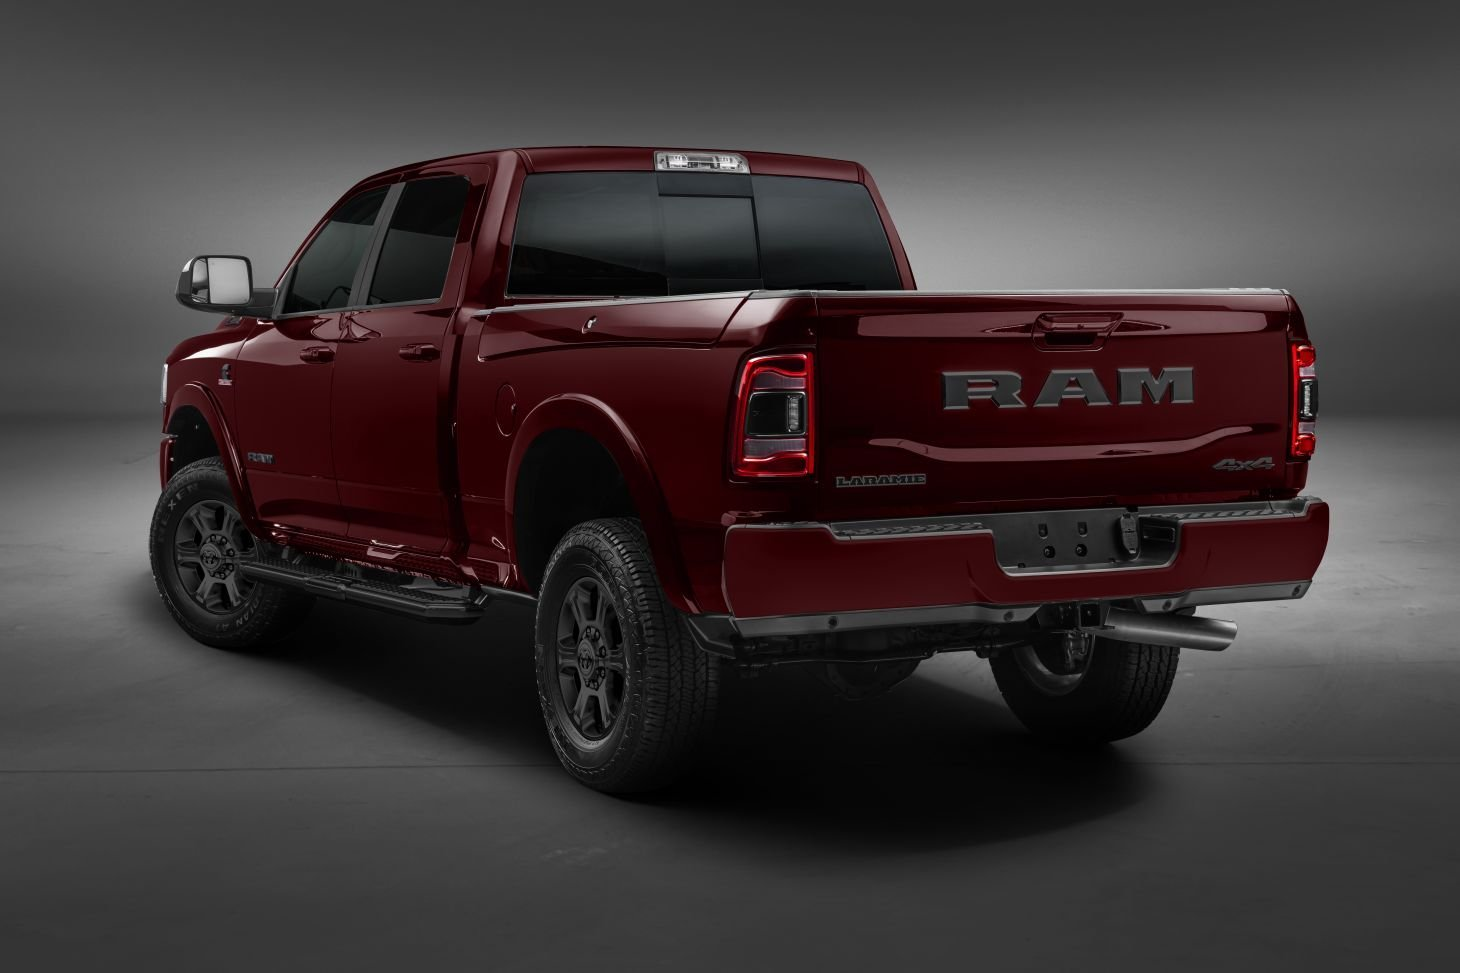 ram 2500 2020 night edition traseira vermelha